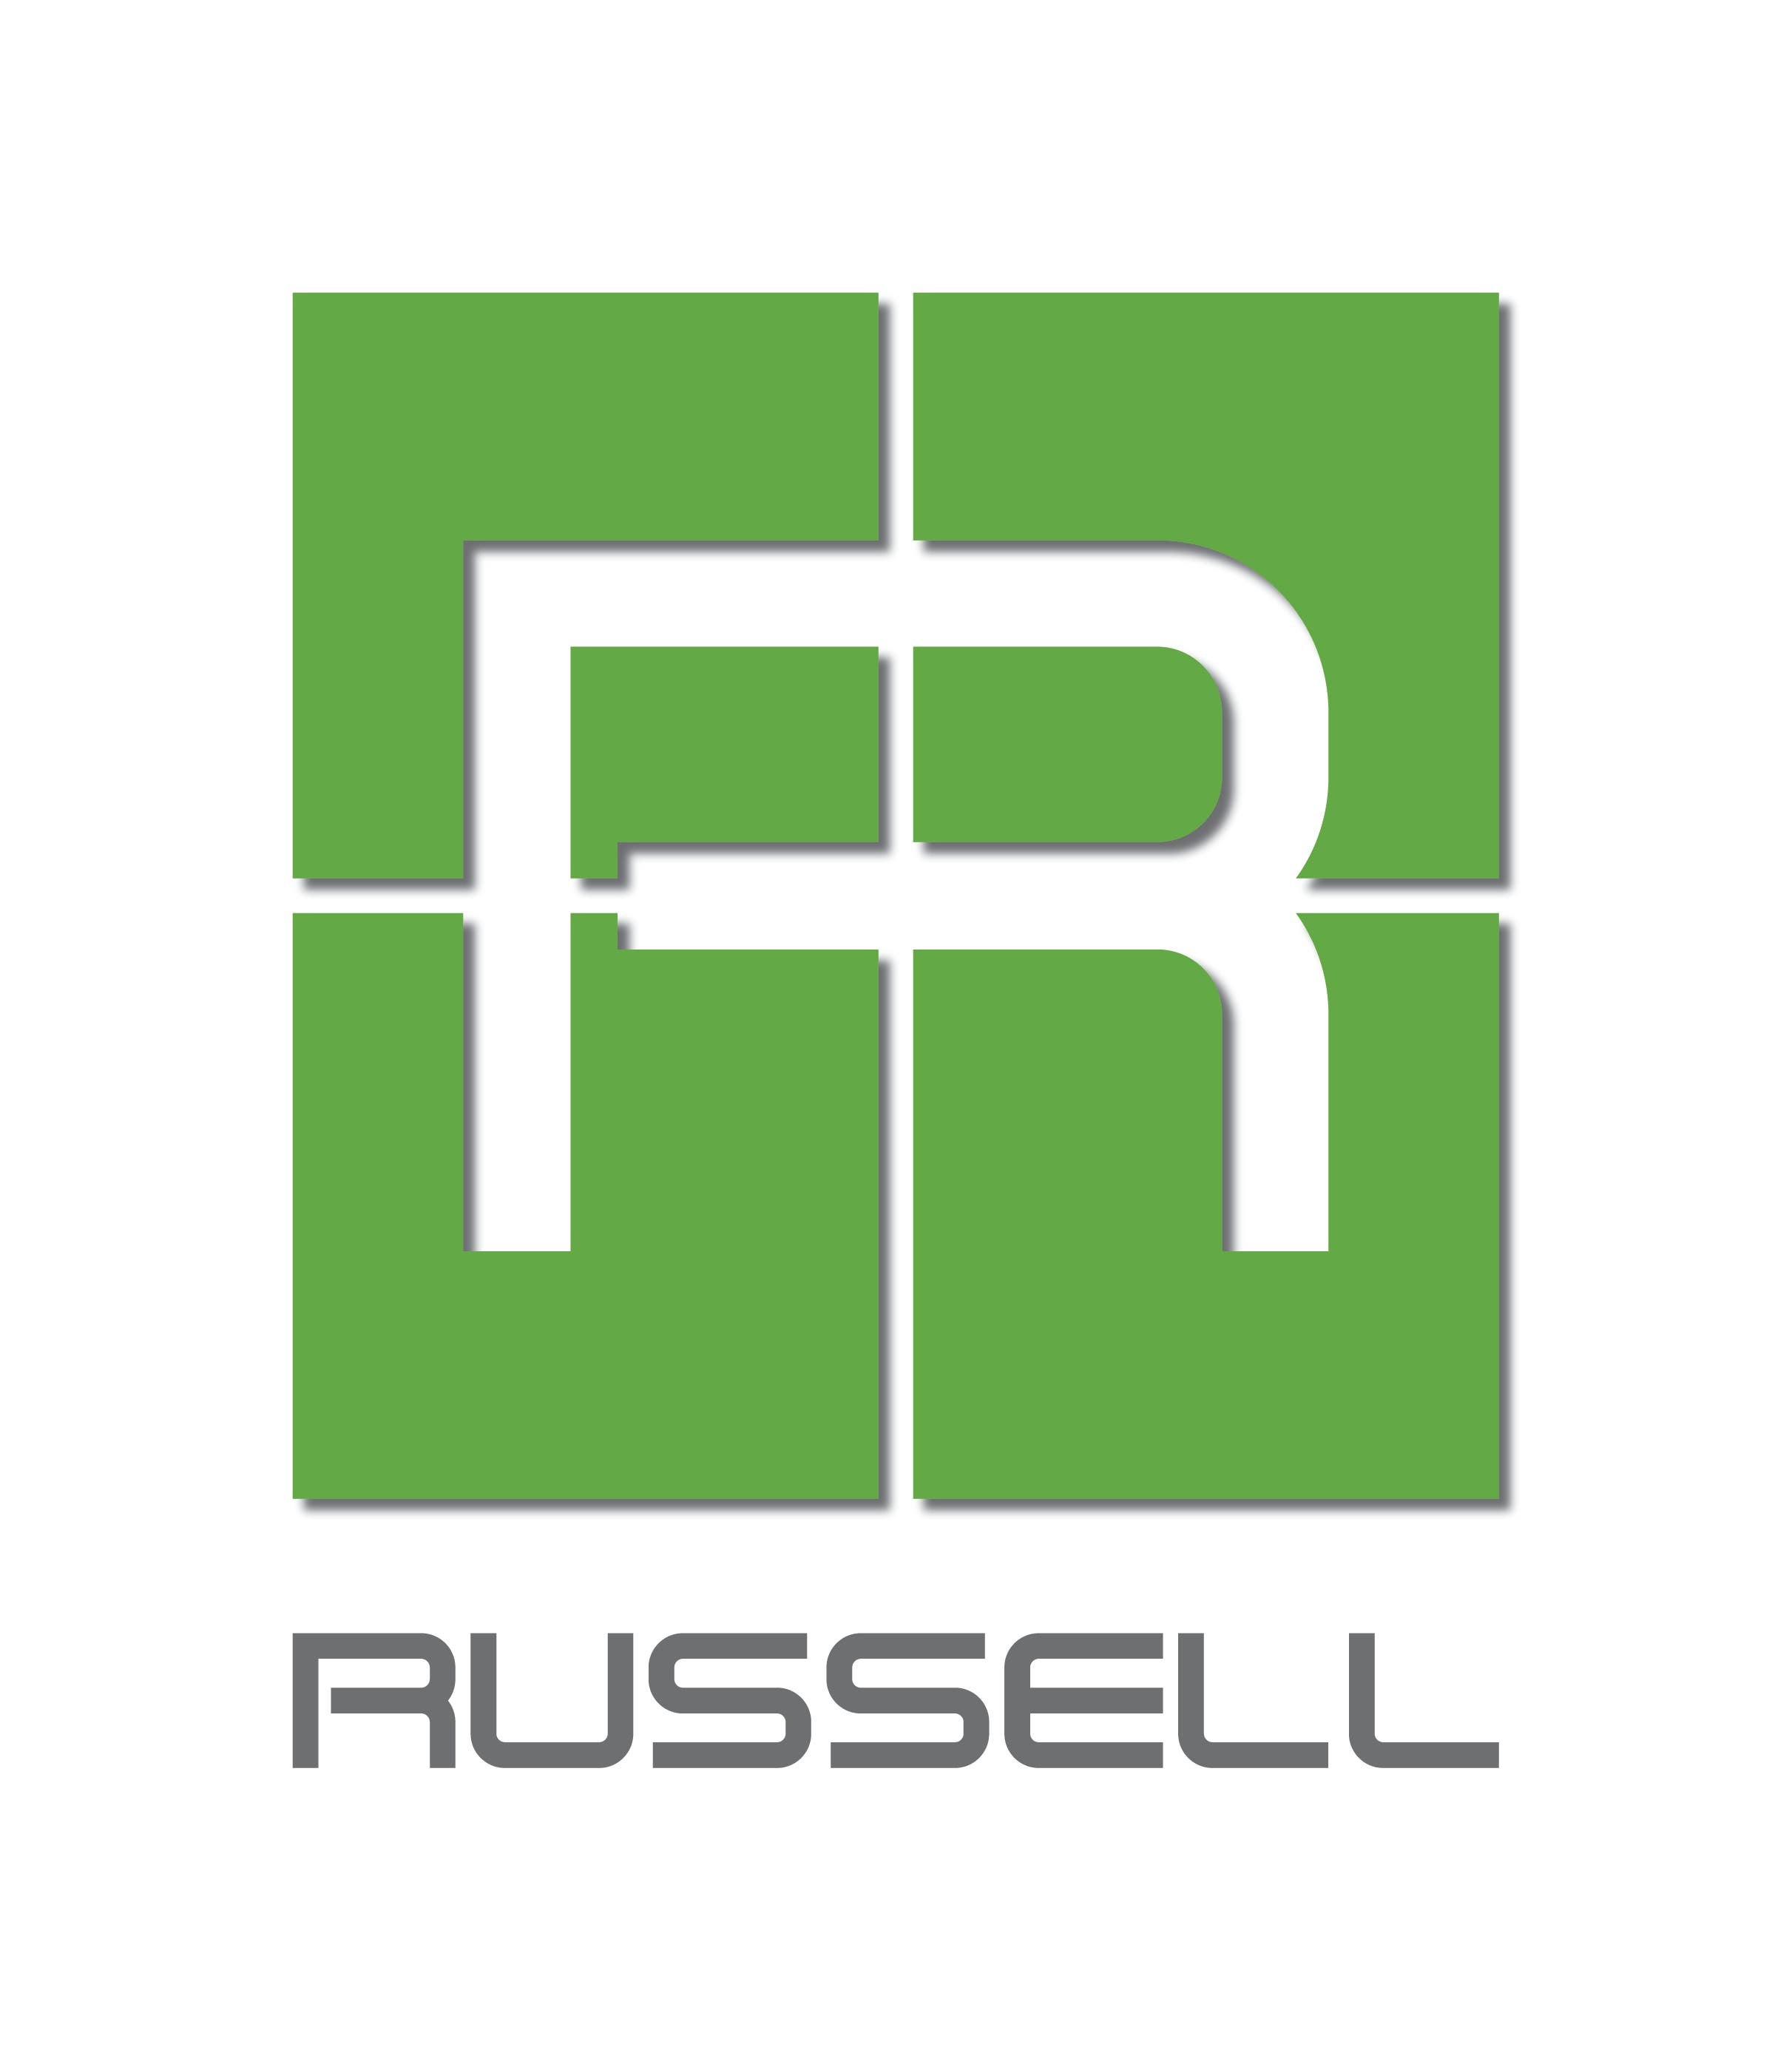 H J Russell & Co logo